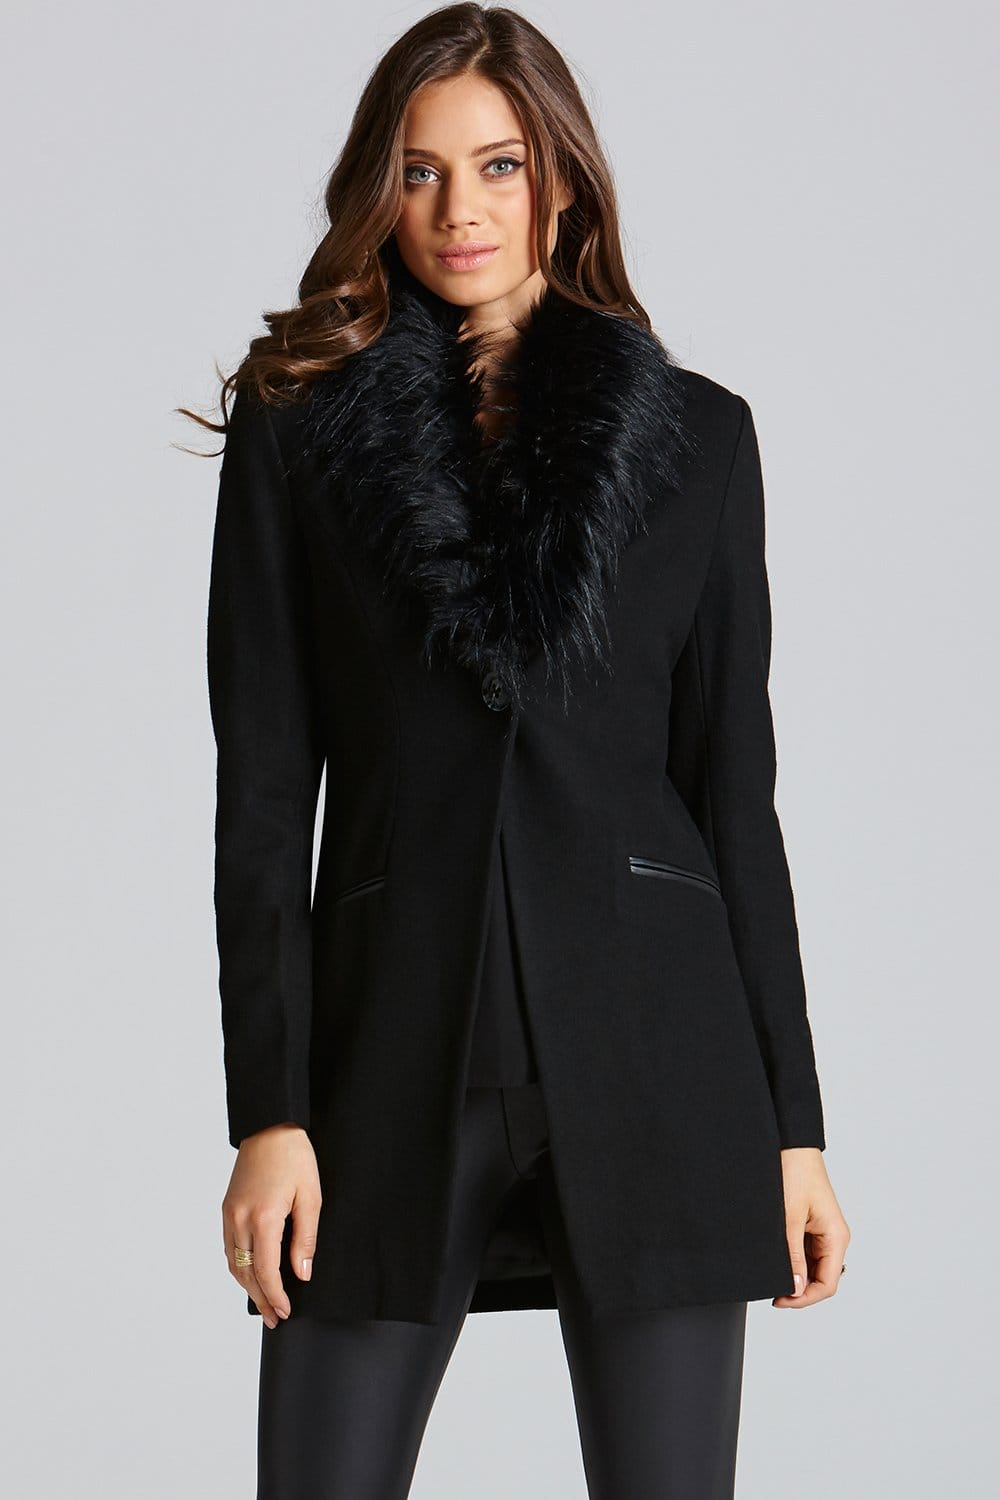 Black Coat With Faux Fur Collar